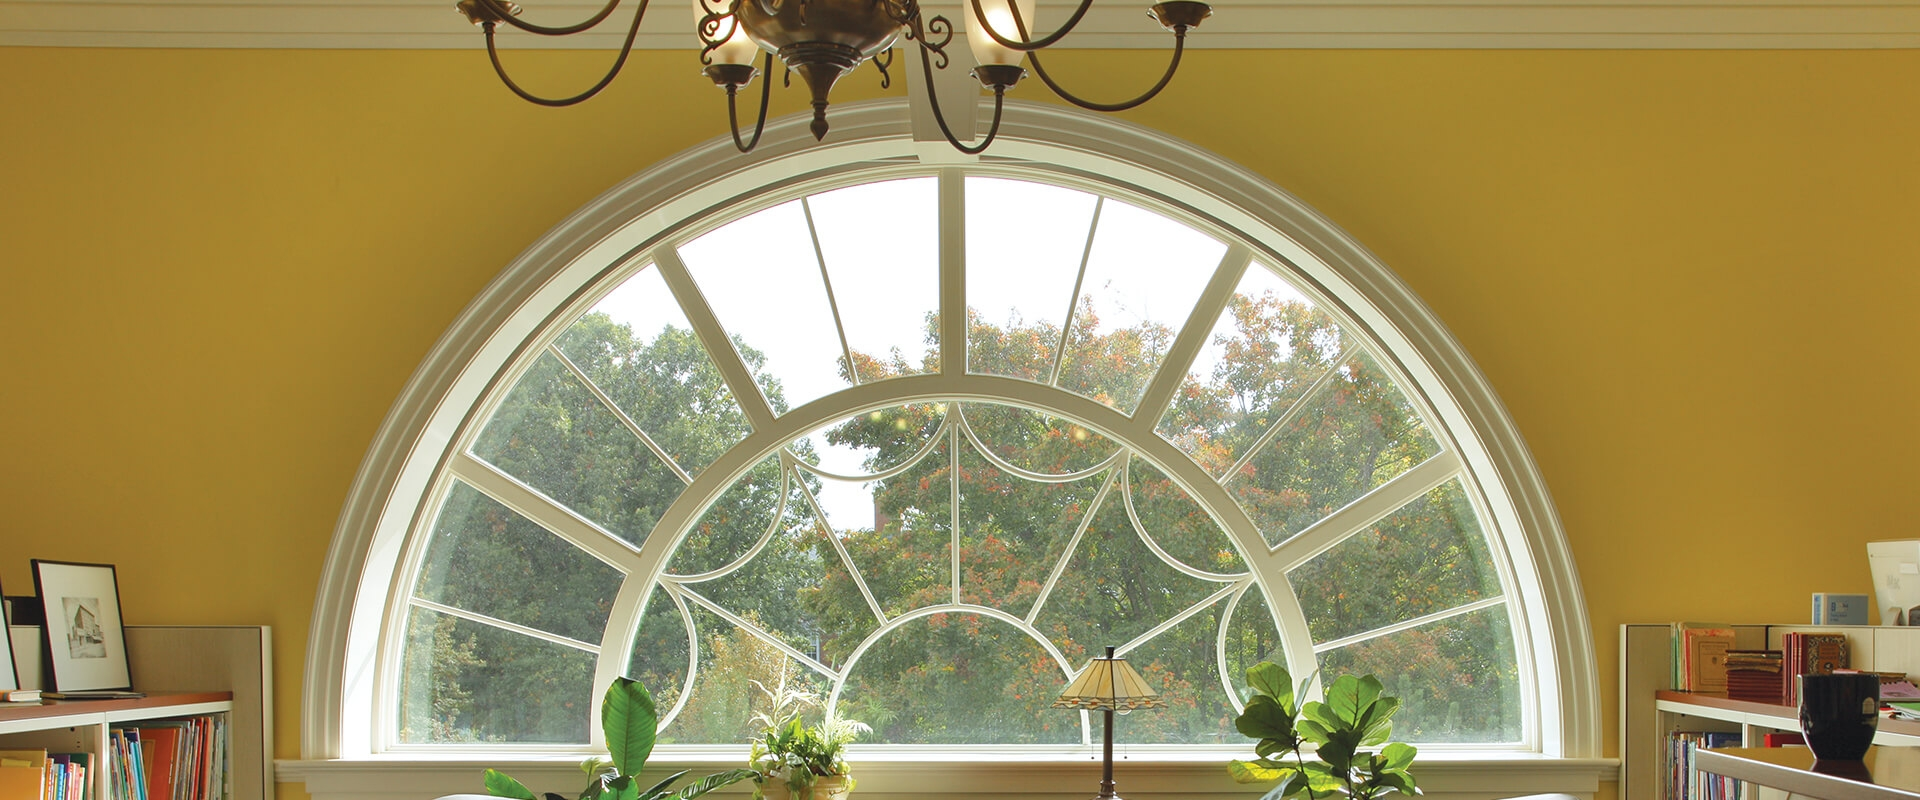 10 Stunning Arched Window Home Design Ideas Kolbe Windows Doors | Staircase Side Window Designs | Window Furniture | Two Story | Angled Staircase | Bedroom | Corner